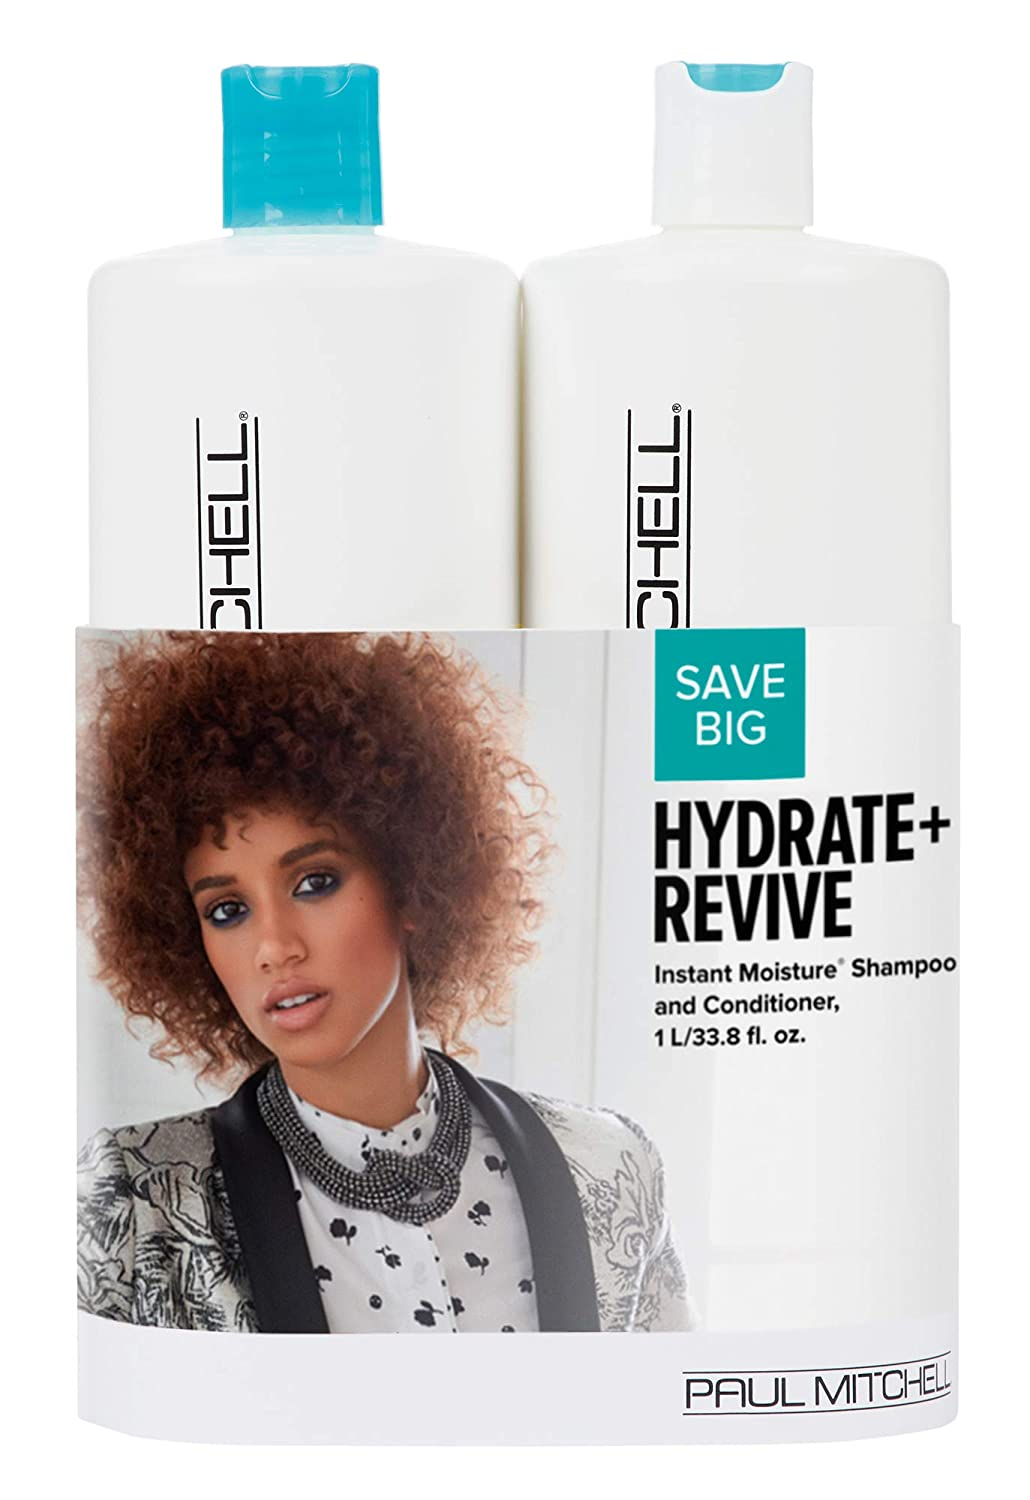 Paul Mitchell Hydrate + Revive Instant Moisture Liter Duo